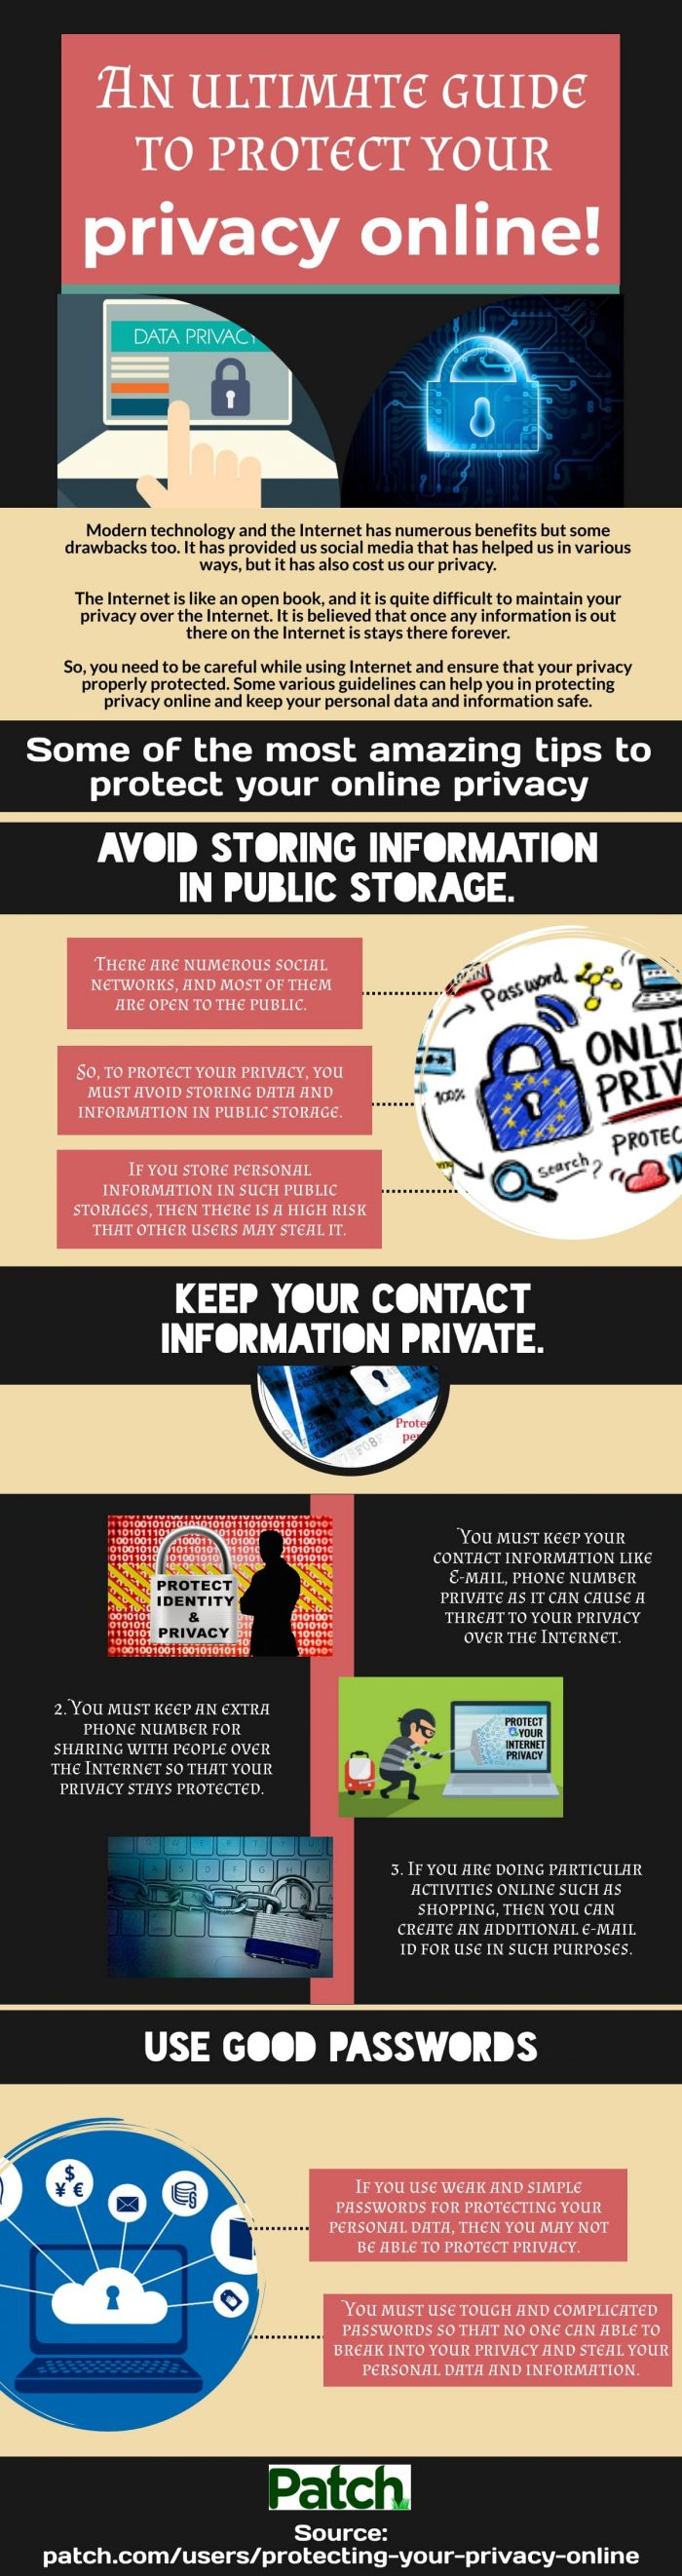 Where Can I find the best Protecting privacy online